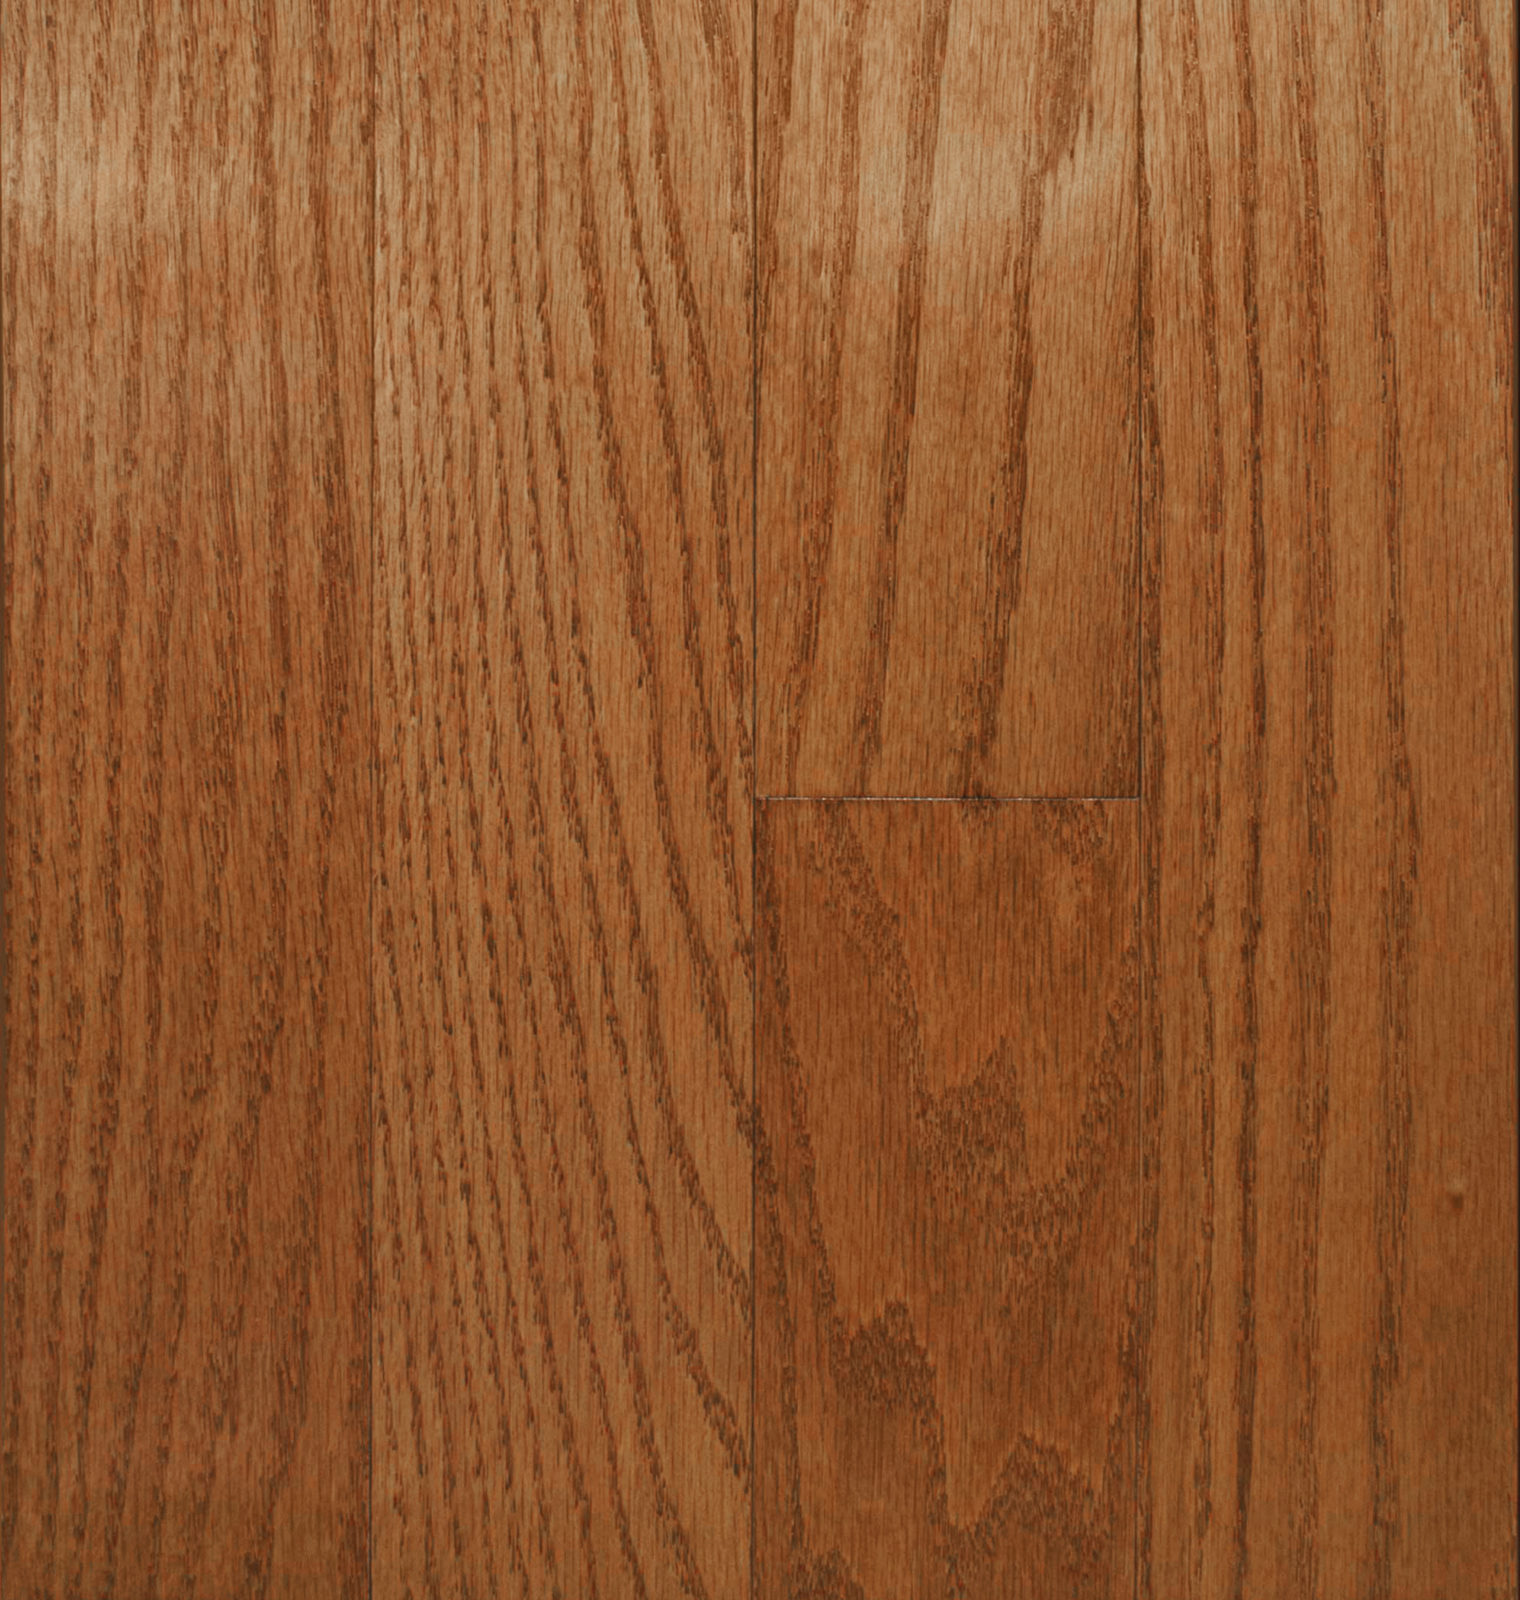 Mohawk Engineered Wood Flooring Reviews Installation Instructions